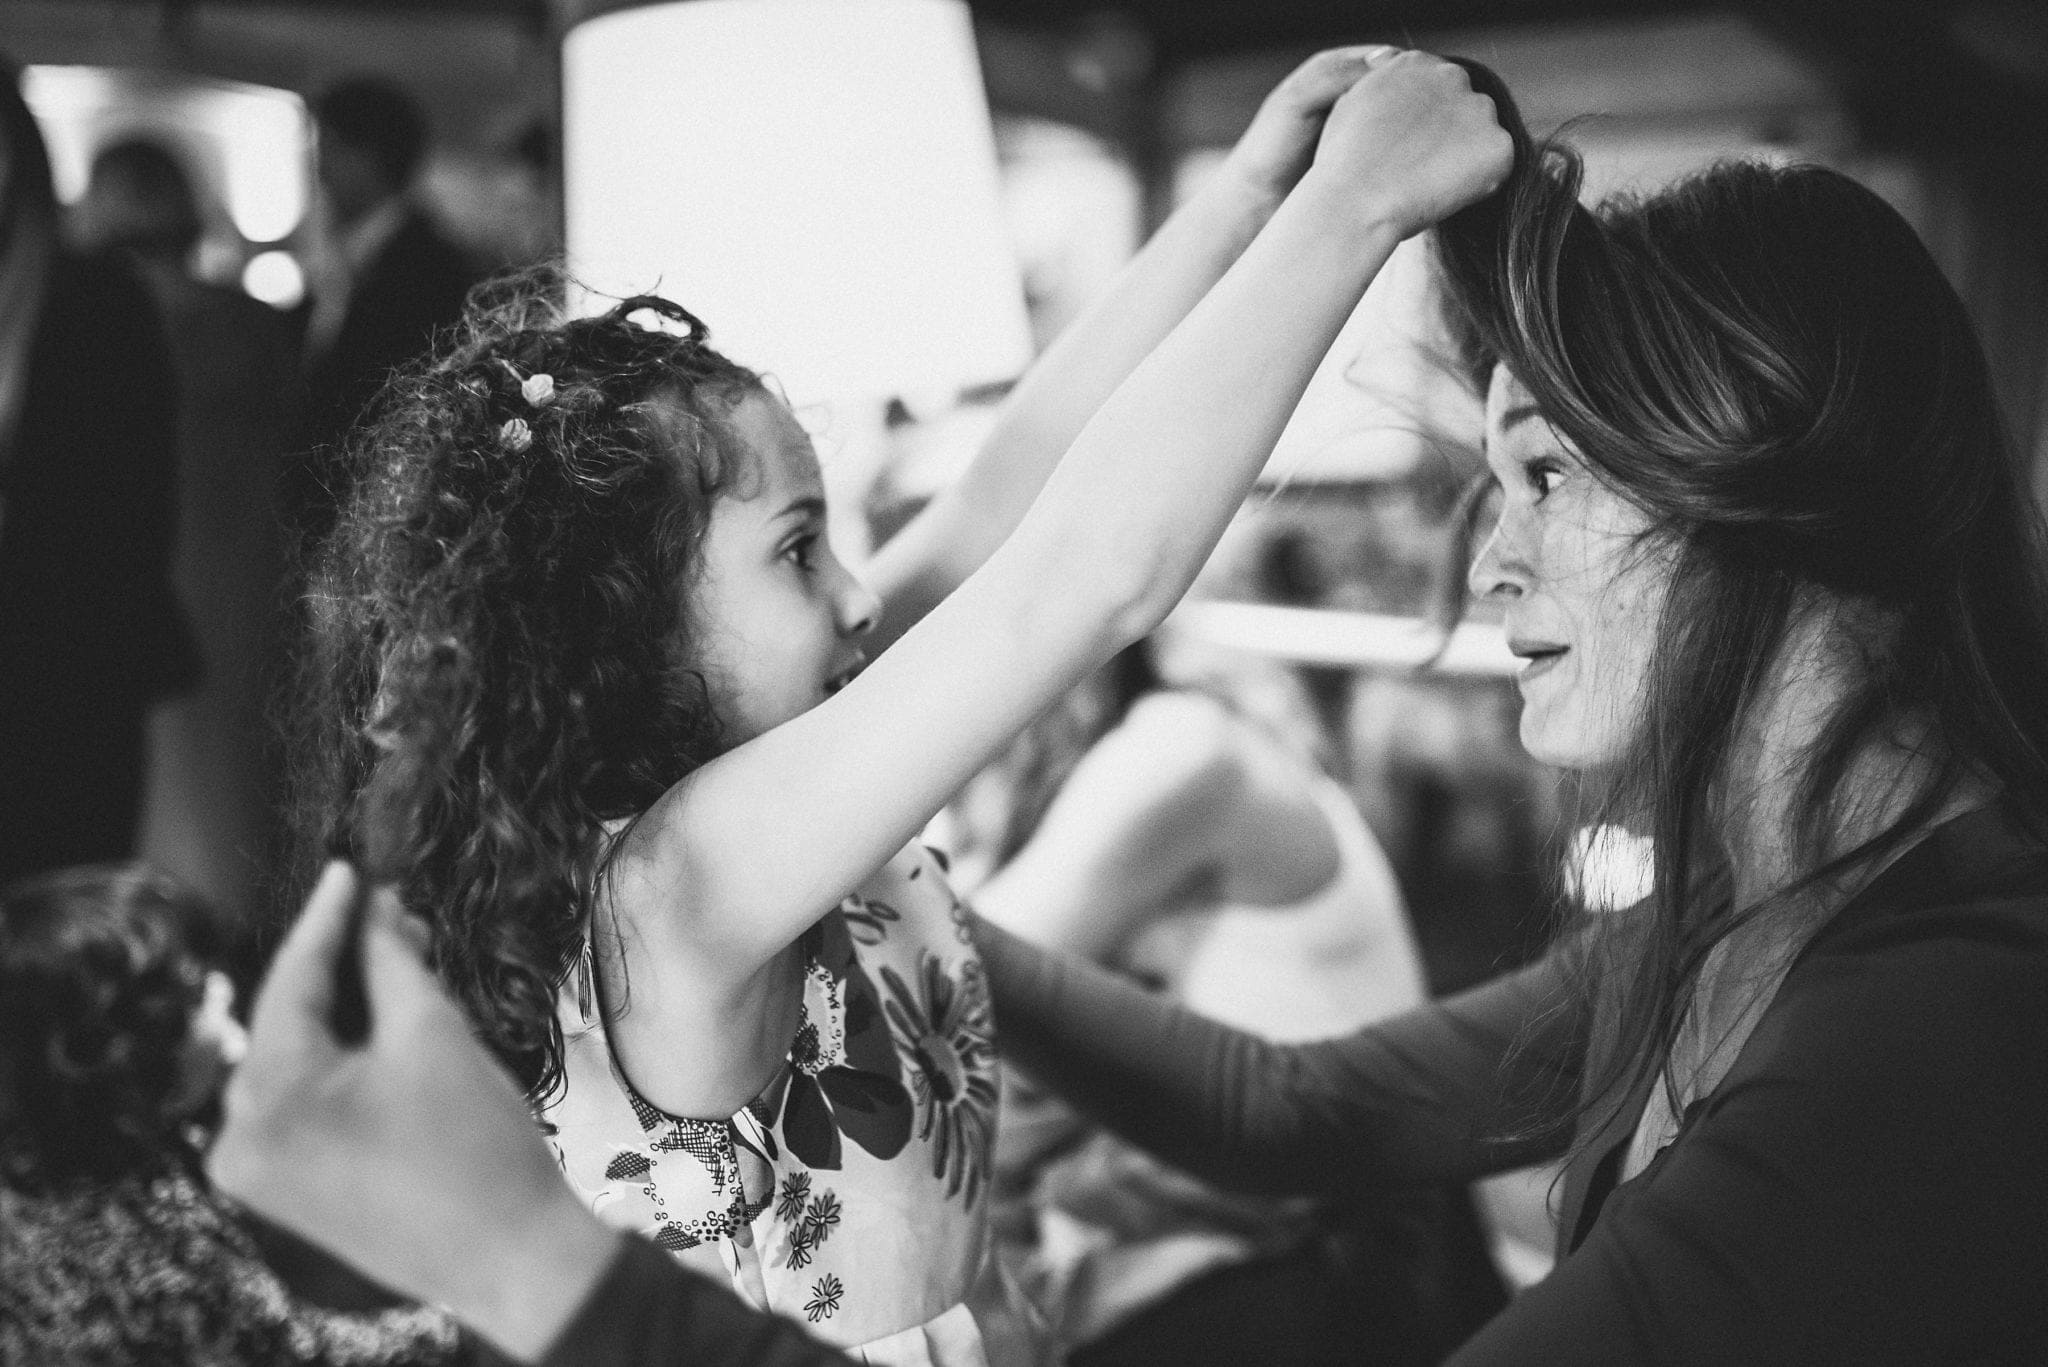 Child plays with guest's hair at wedding reception